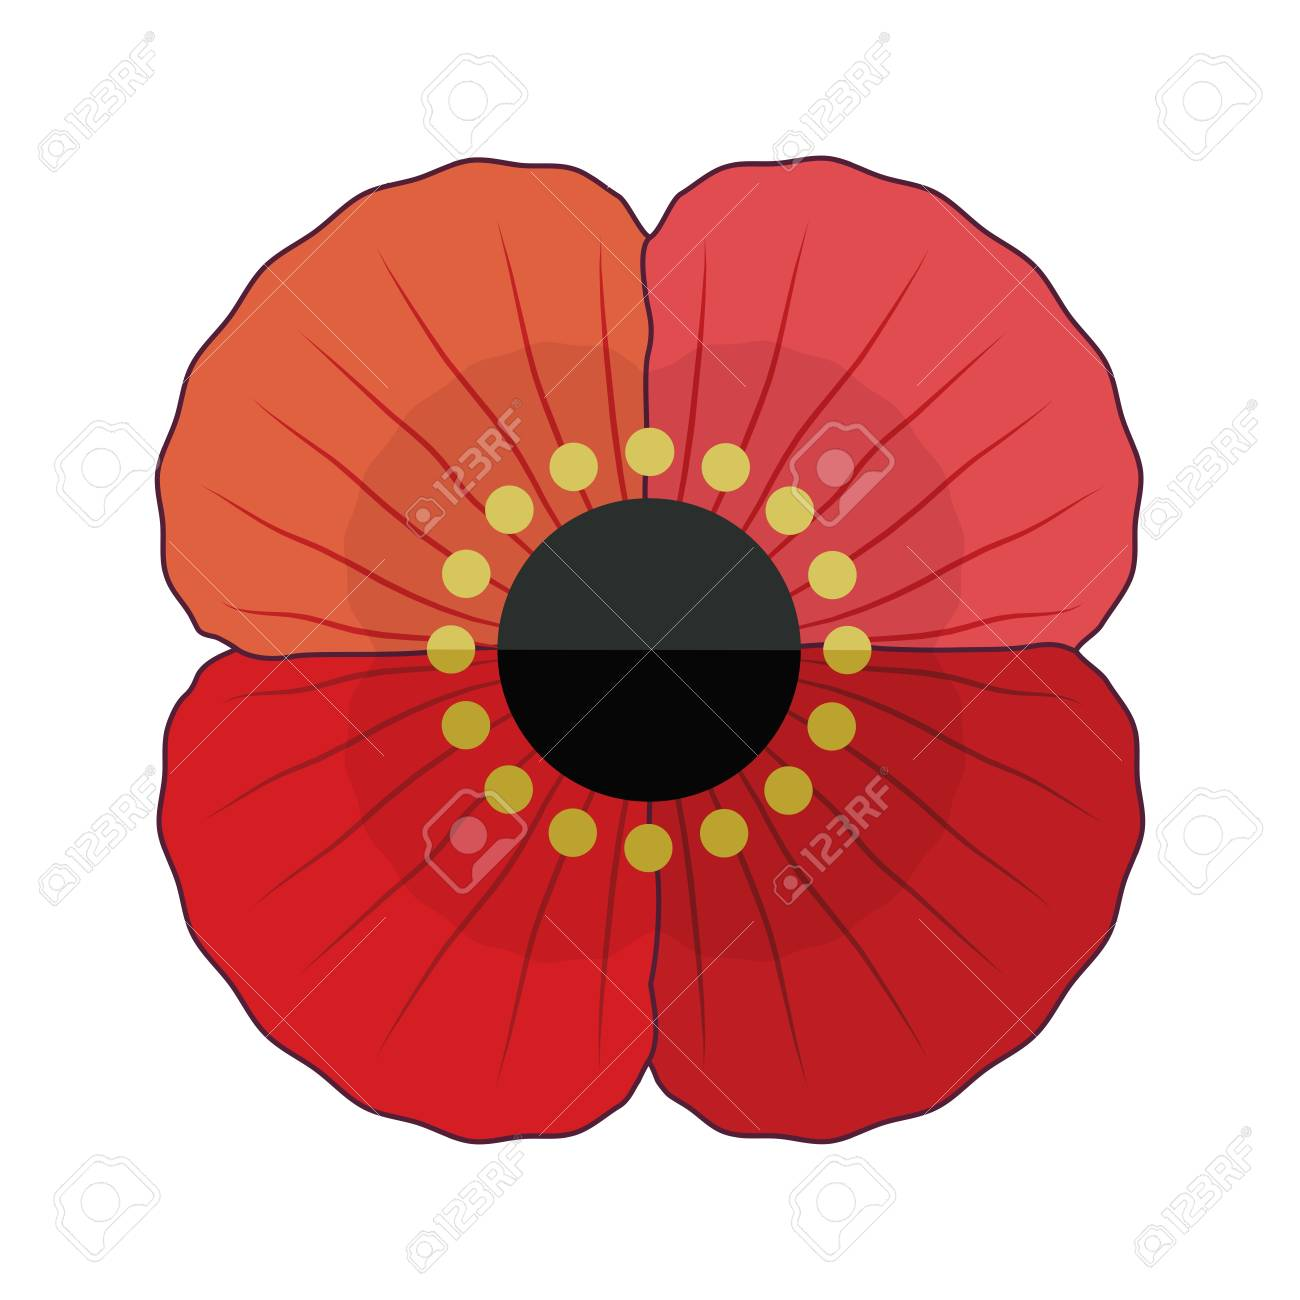 Fun Retro Style Red Poppy Flower For Anzac And Remembrance Day